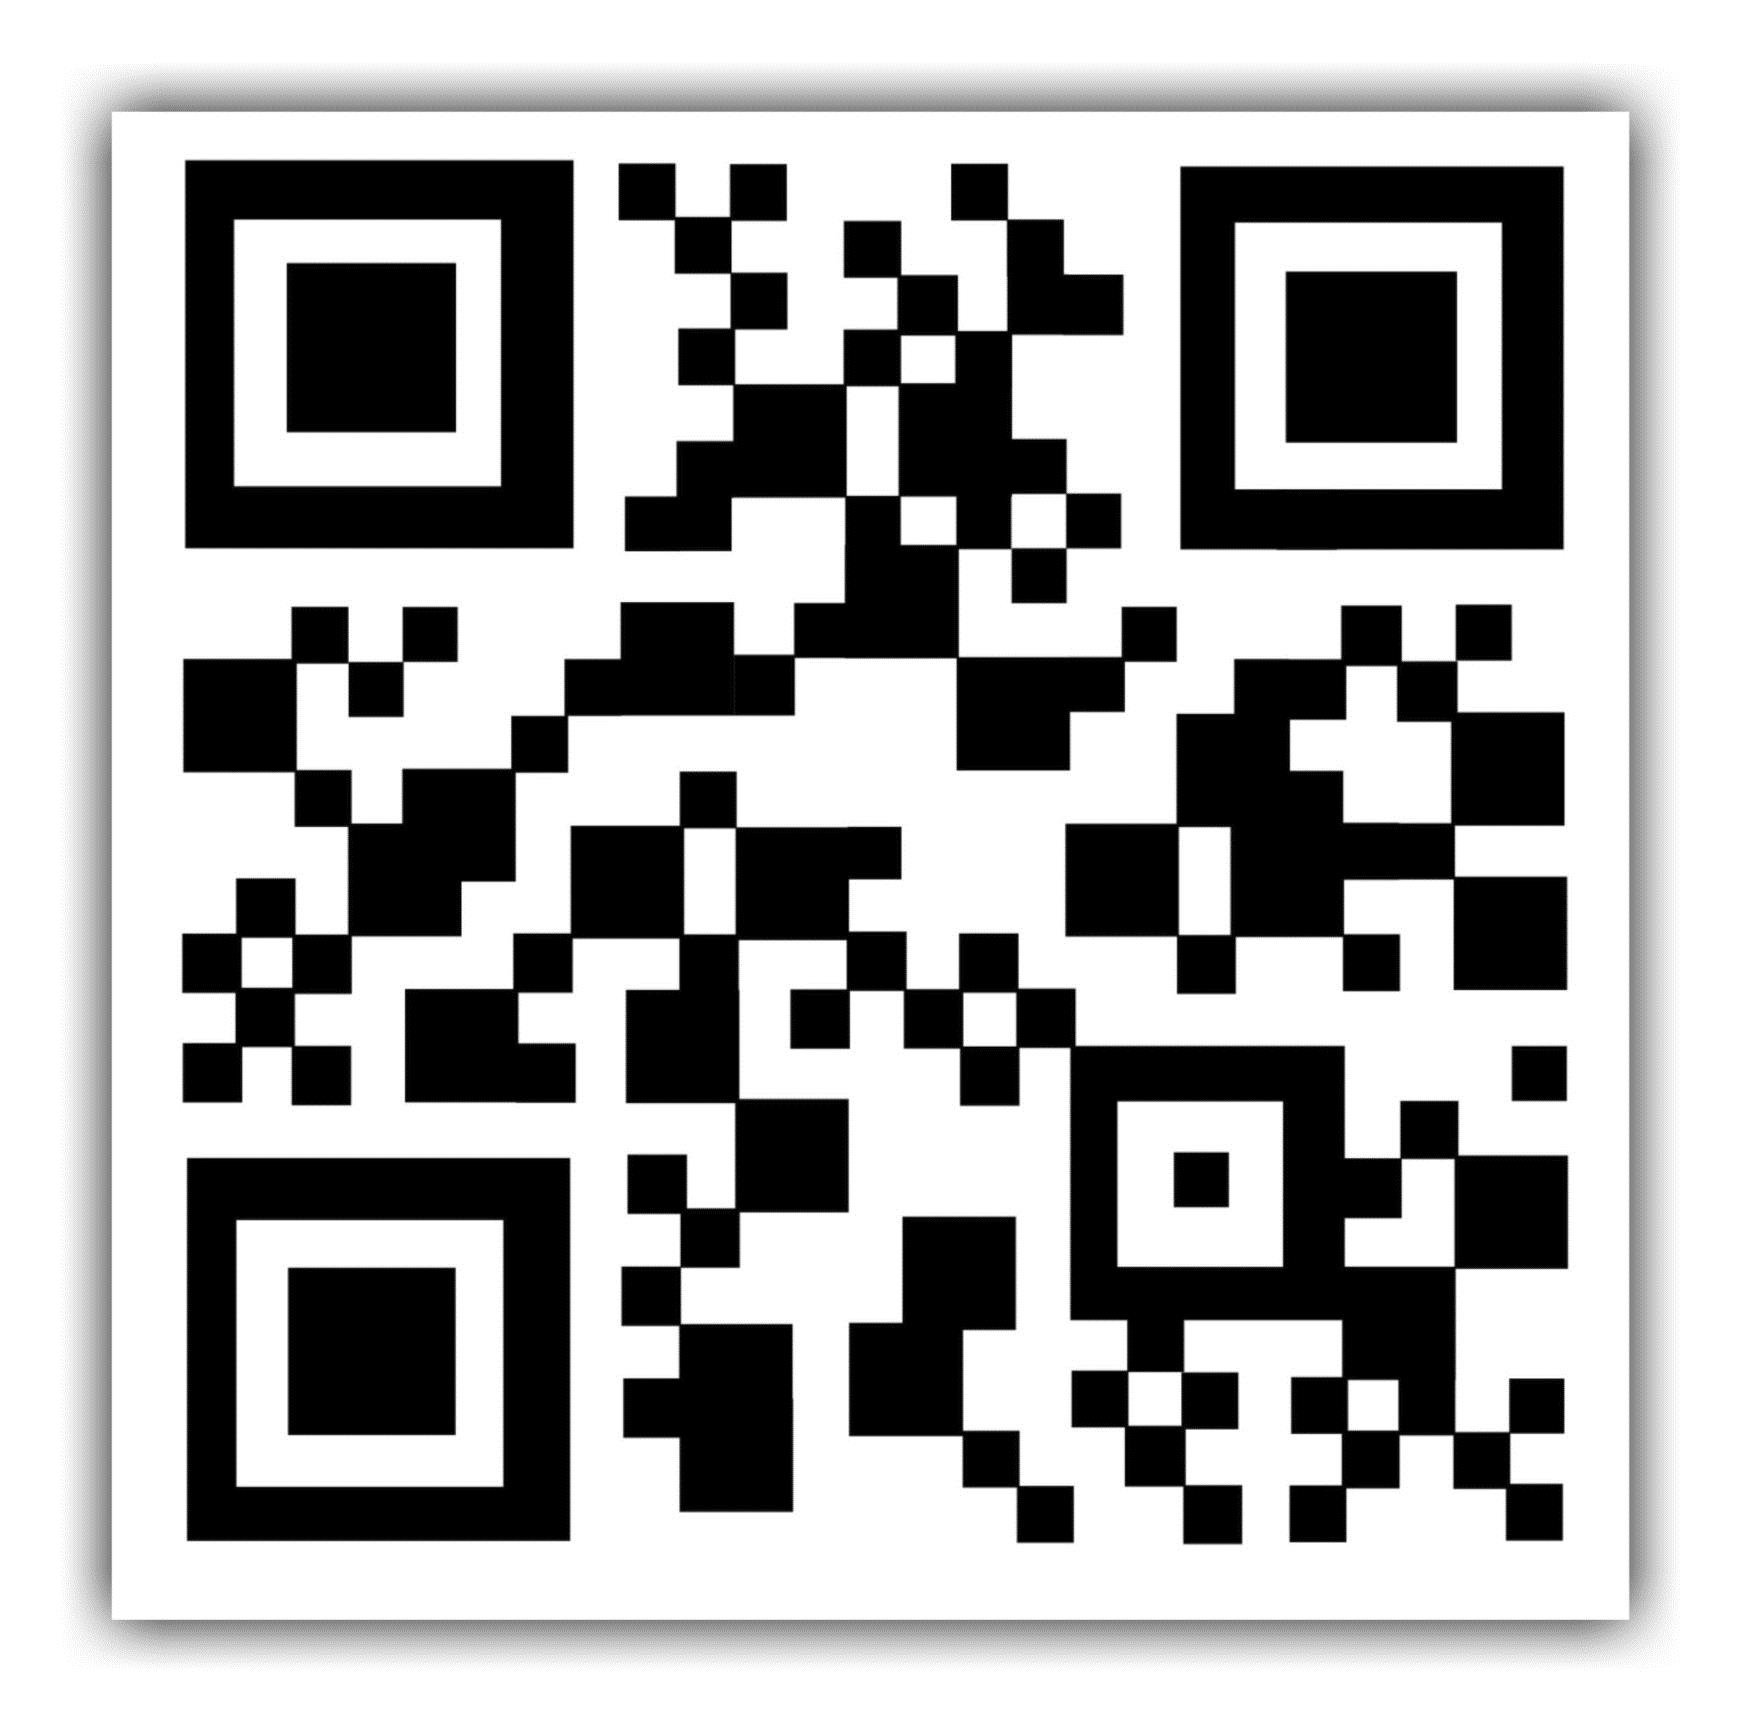 Let's create our own QR code in 3 simple steps | Daily ...